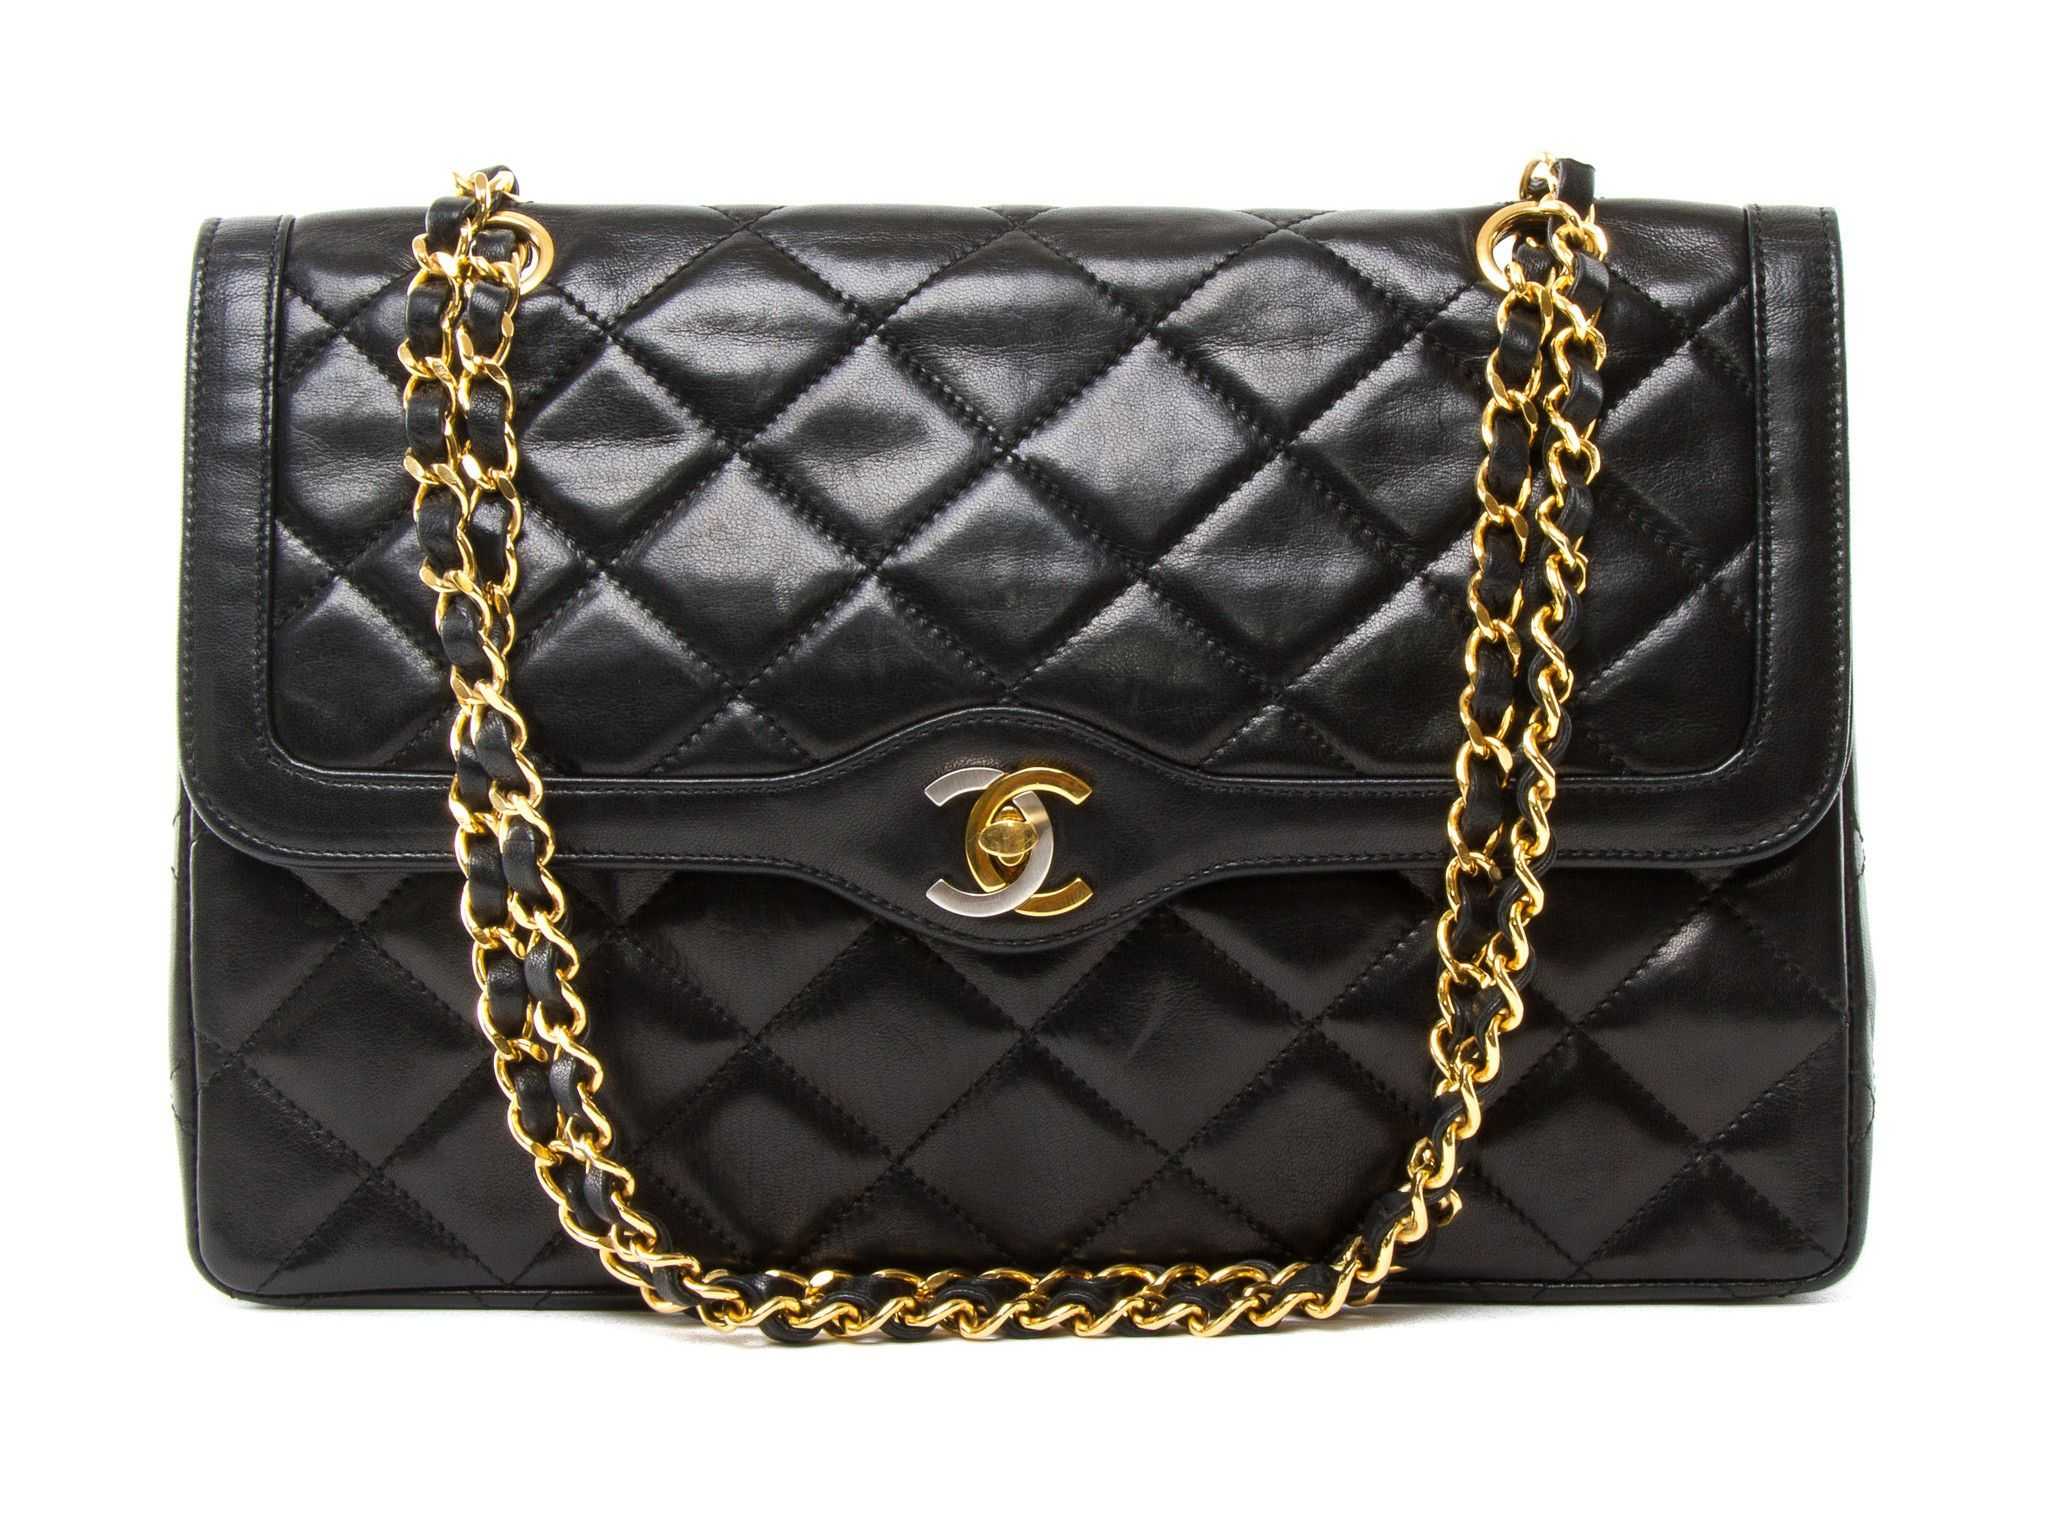 Chanel Black Leather Chain Shoulder Bag